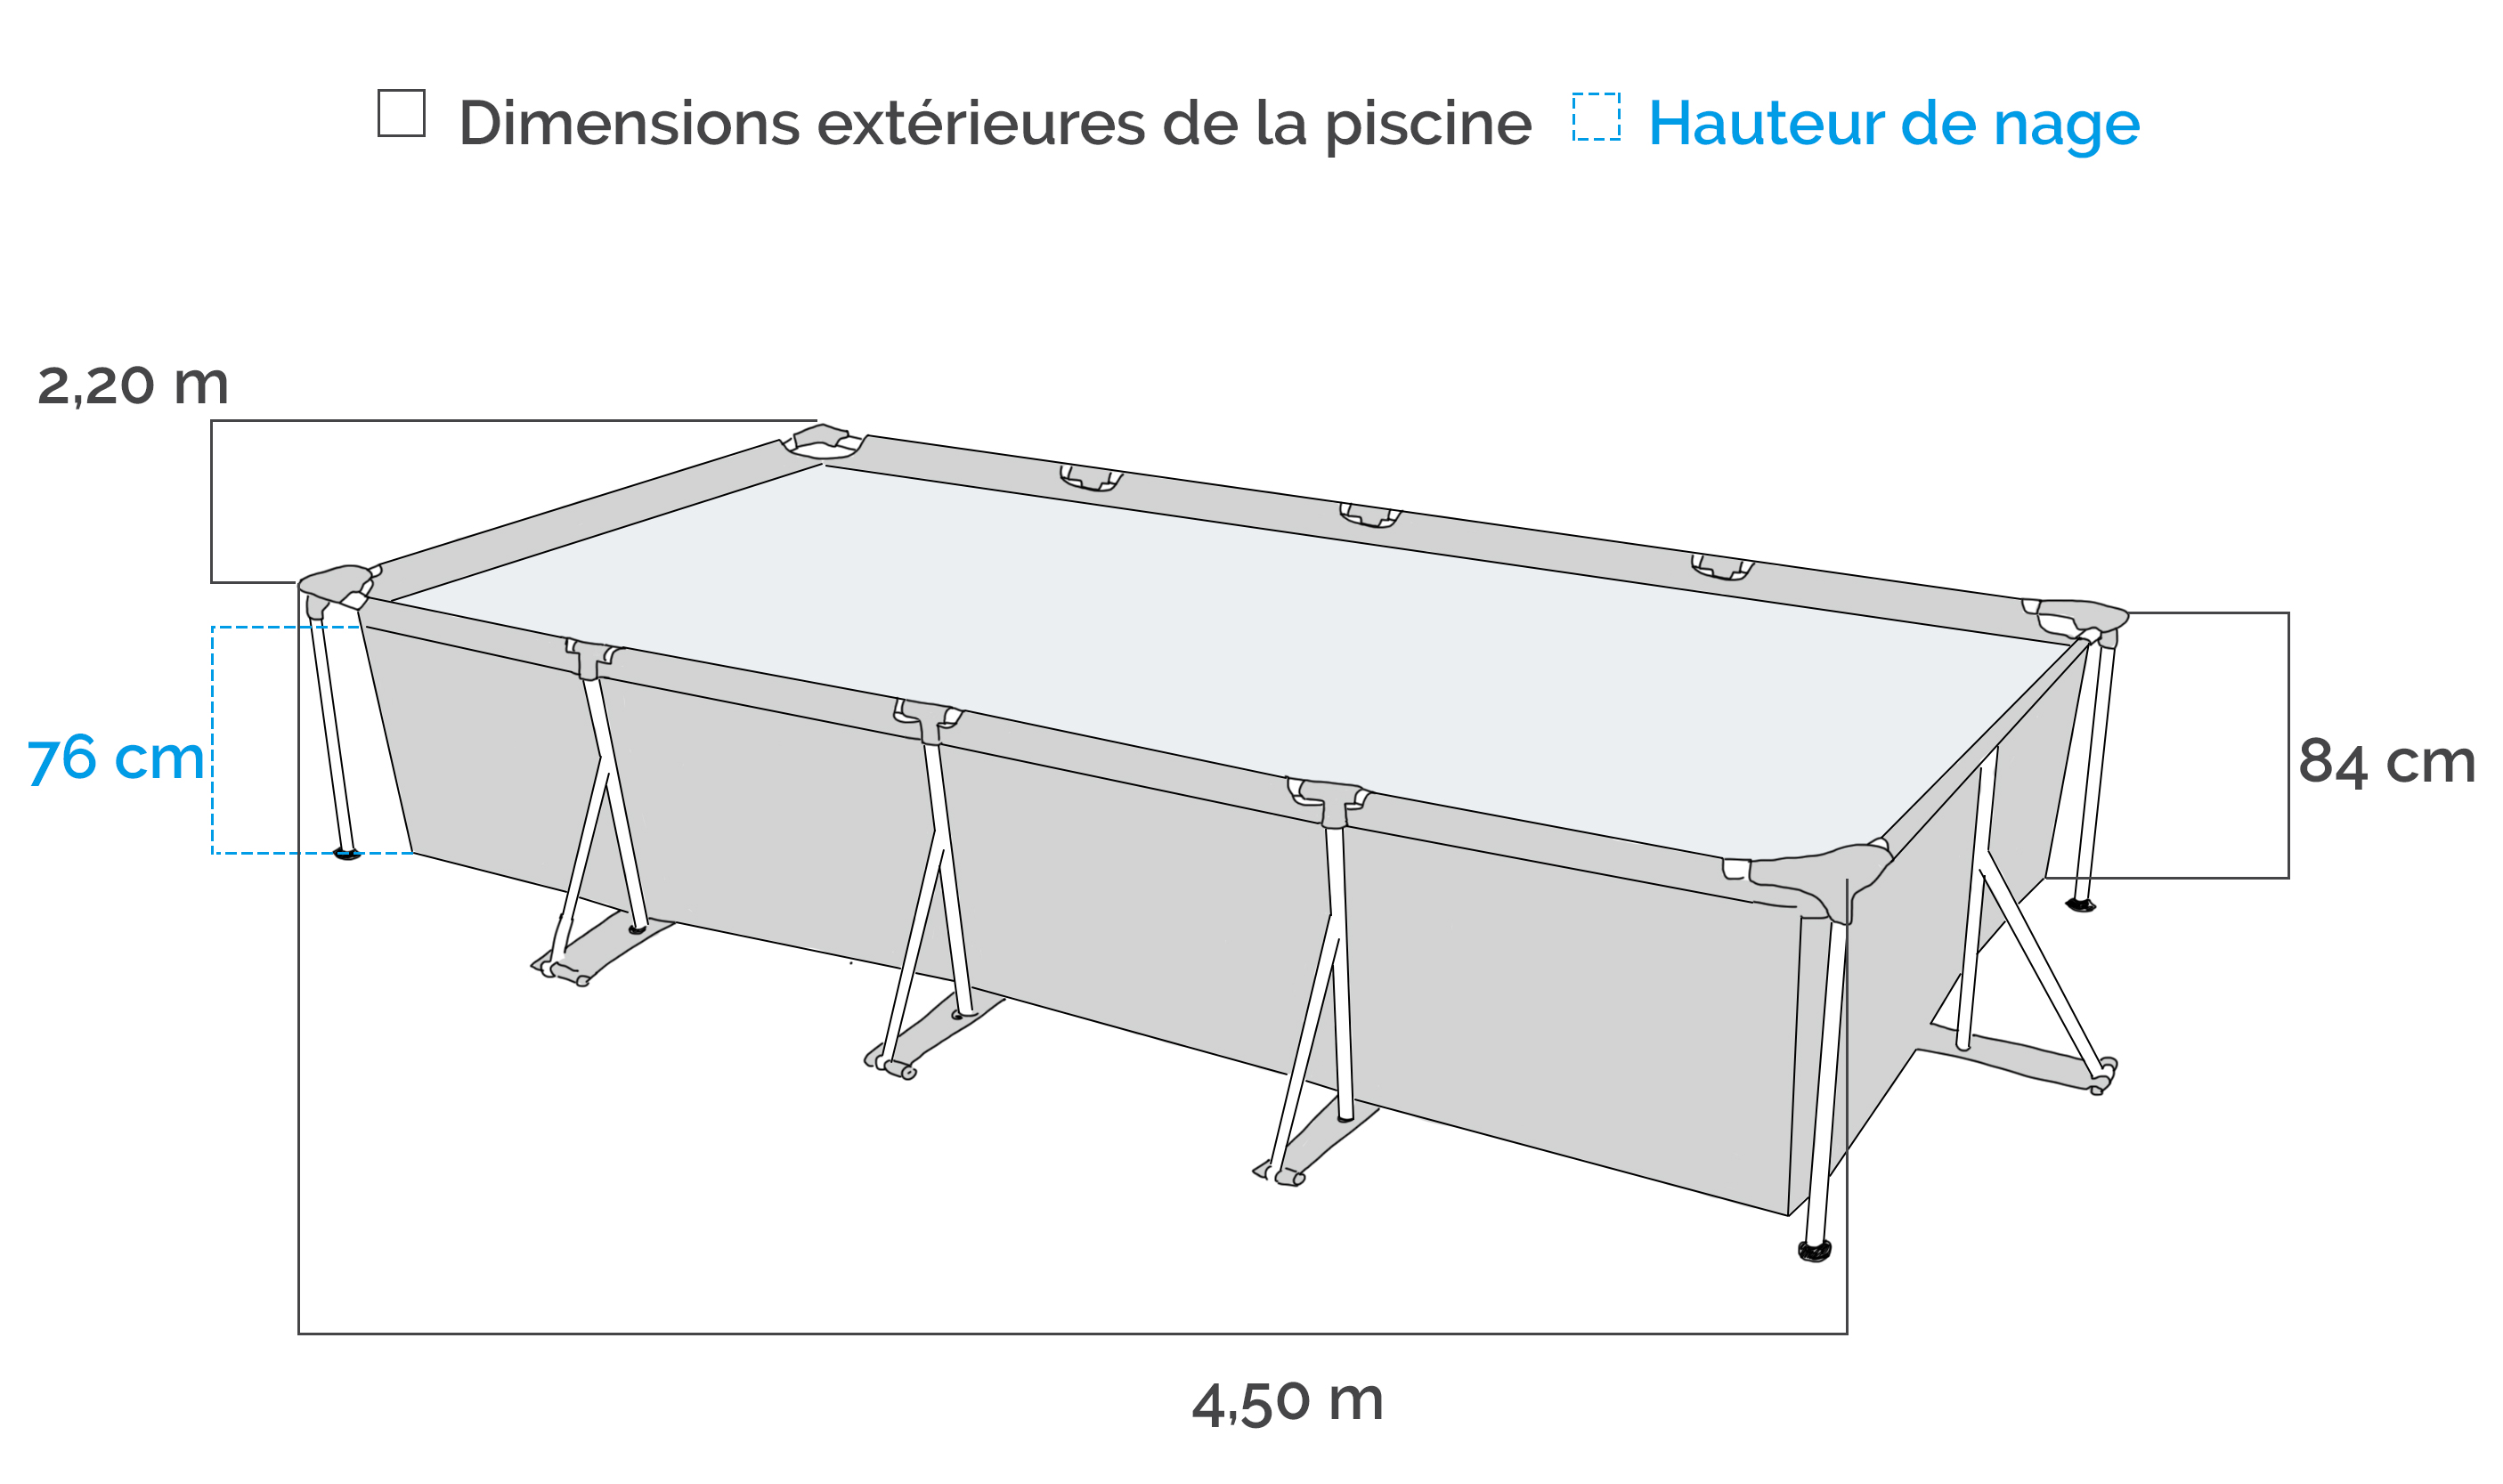 Piscine intex metal frame junior 450 x 220 x 84 piscine for Montage piscine intex